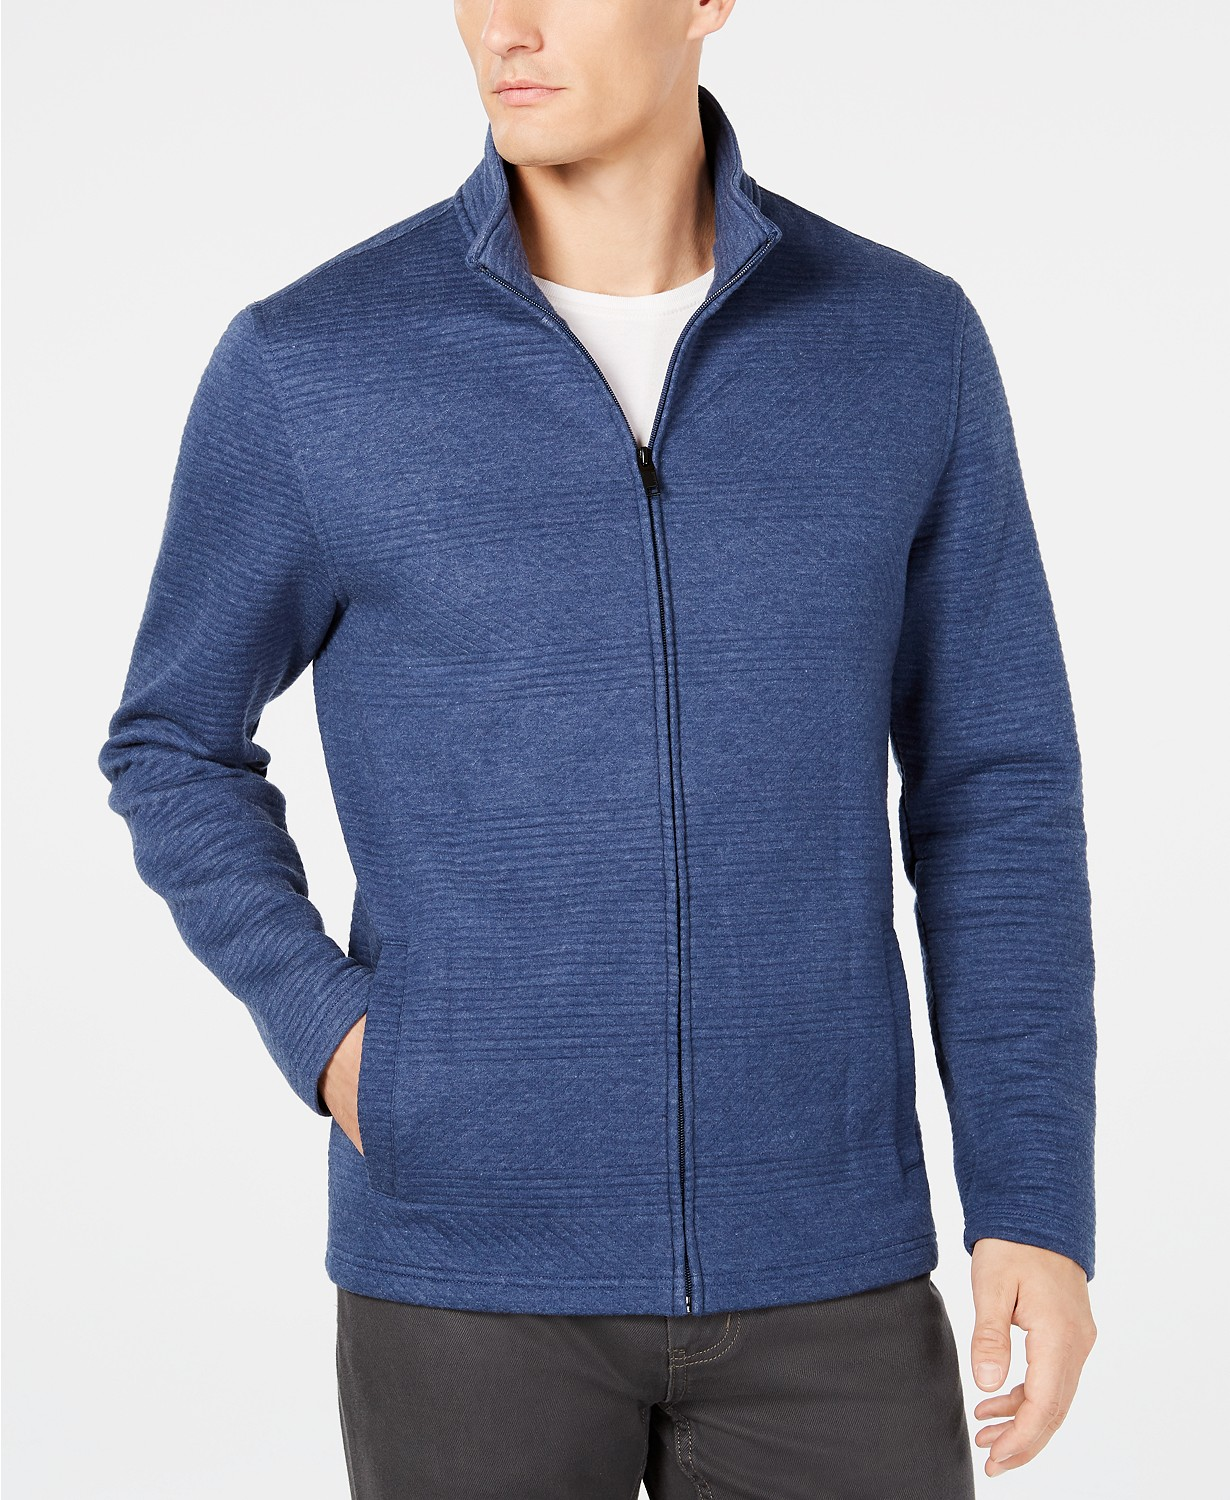 Alfani Men's Textured Zip-Front Jacket (Black or Lake Heather)